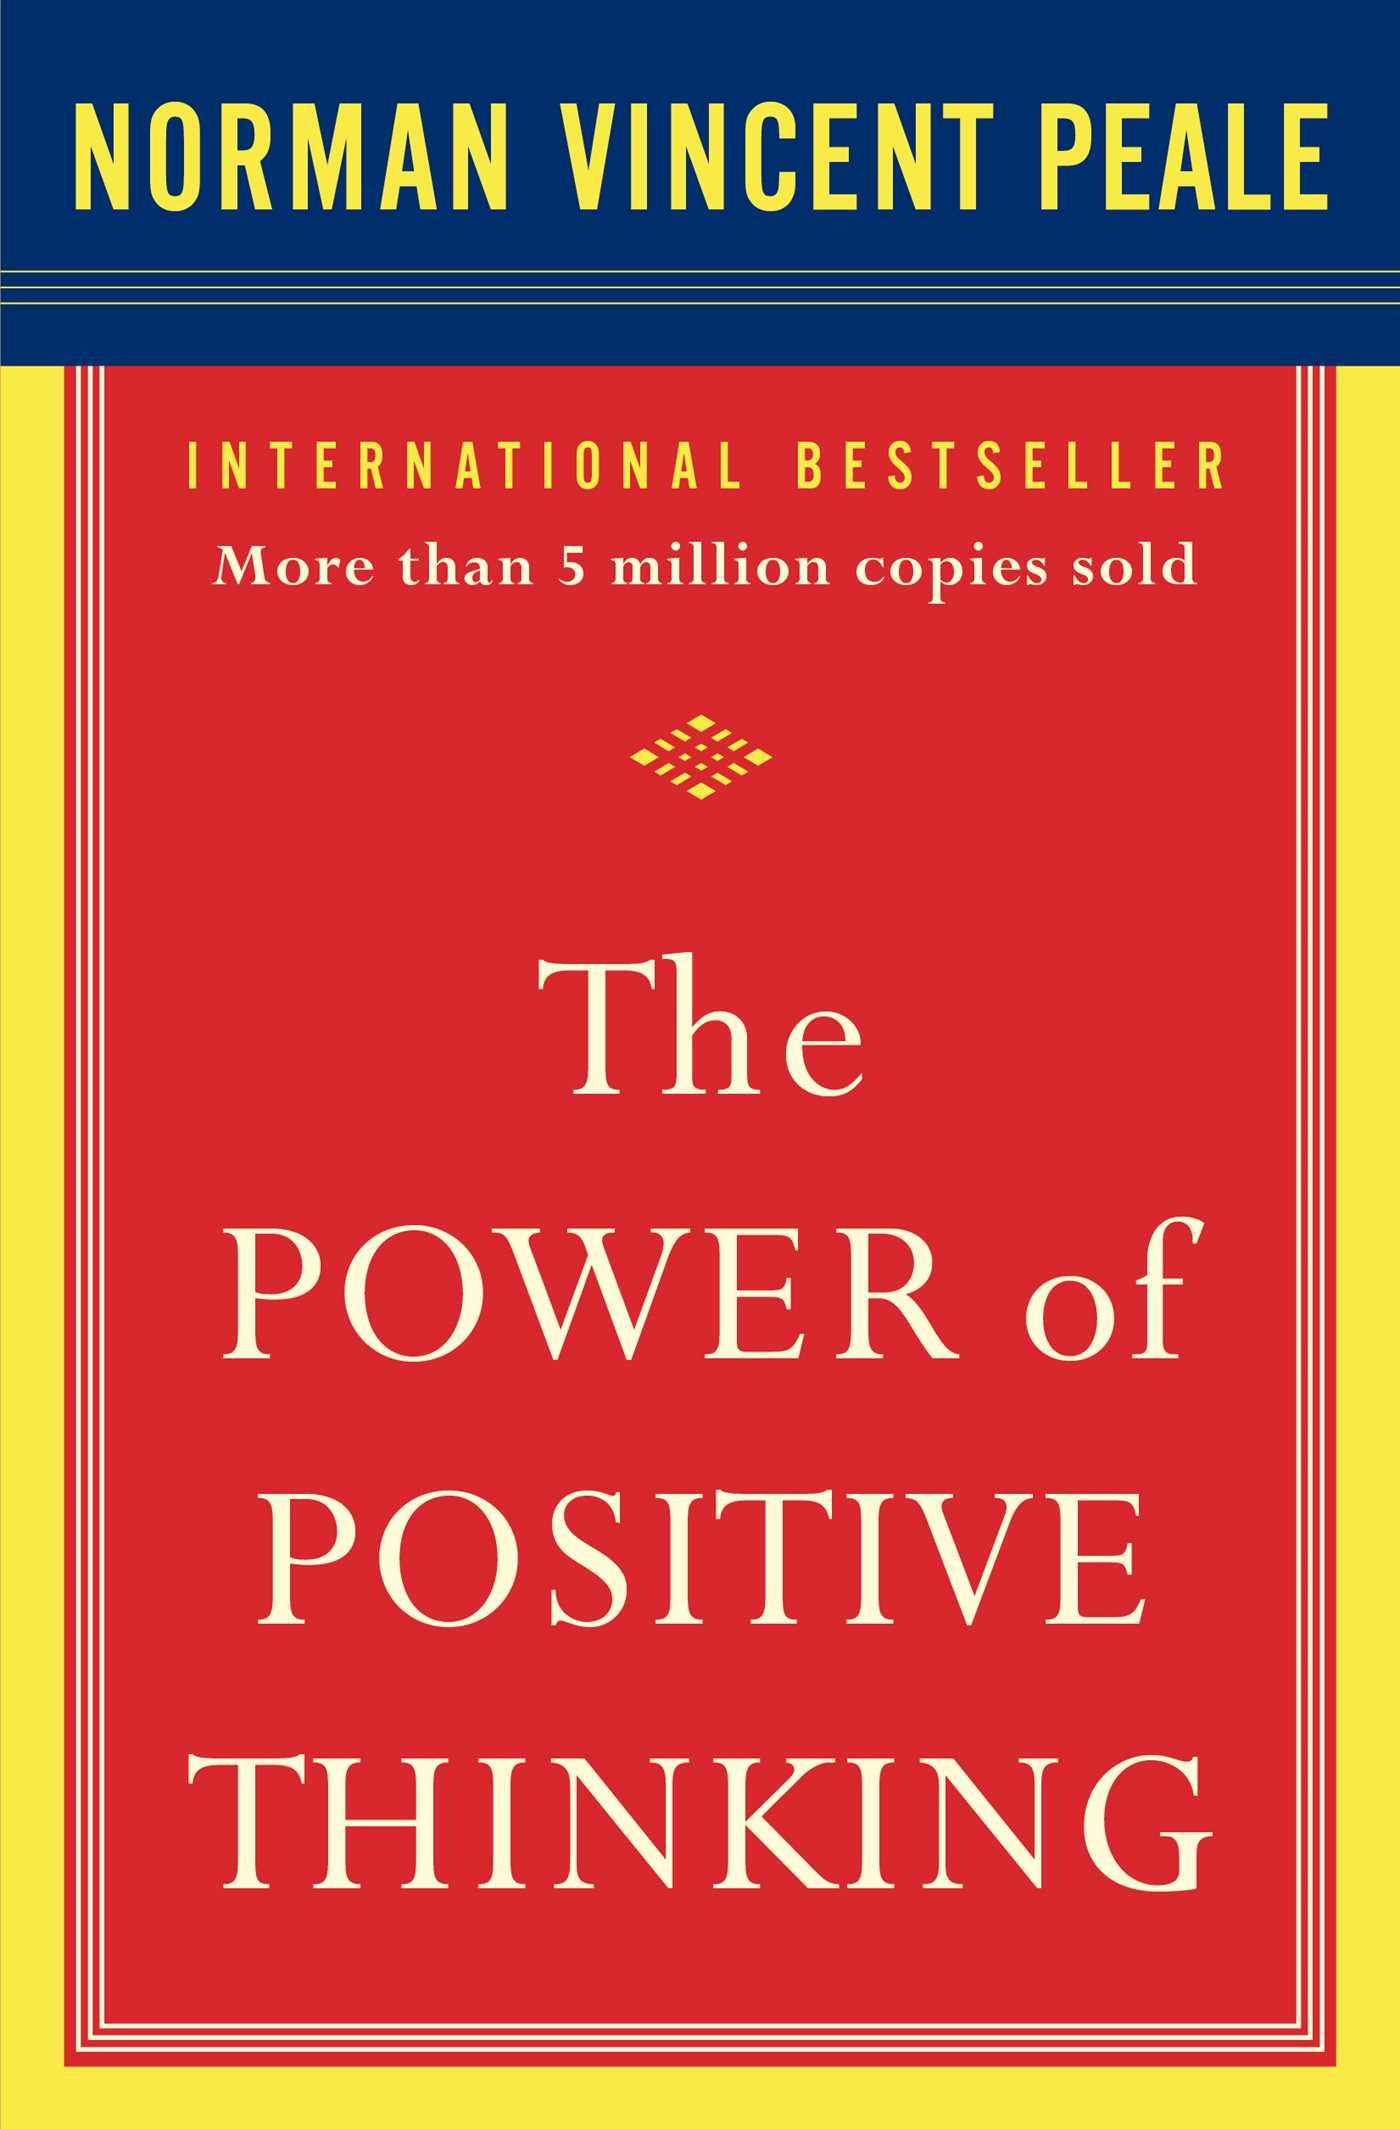 The Power of Positive Thinking ISBN-13 9780743234801